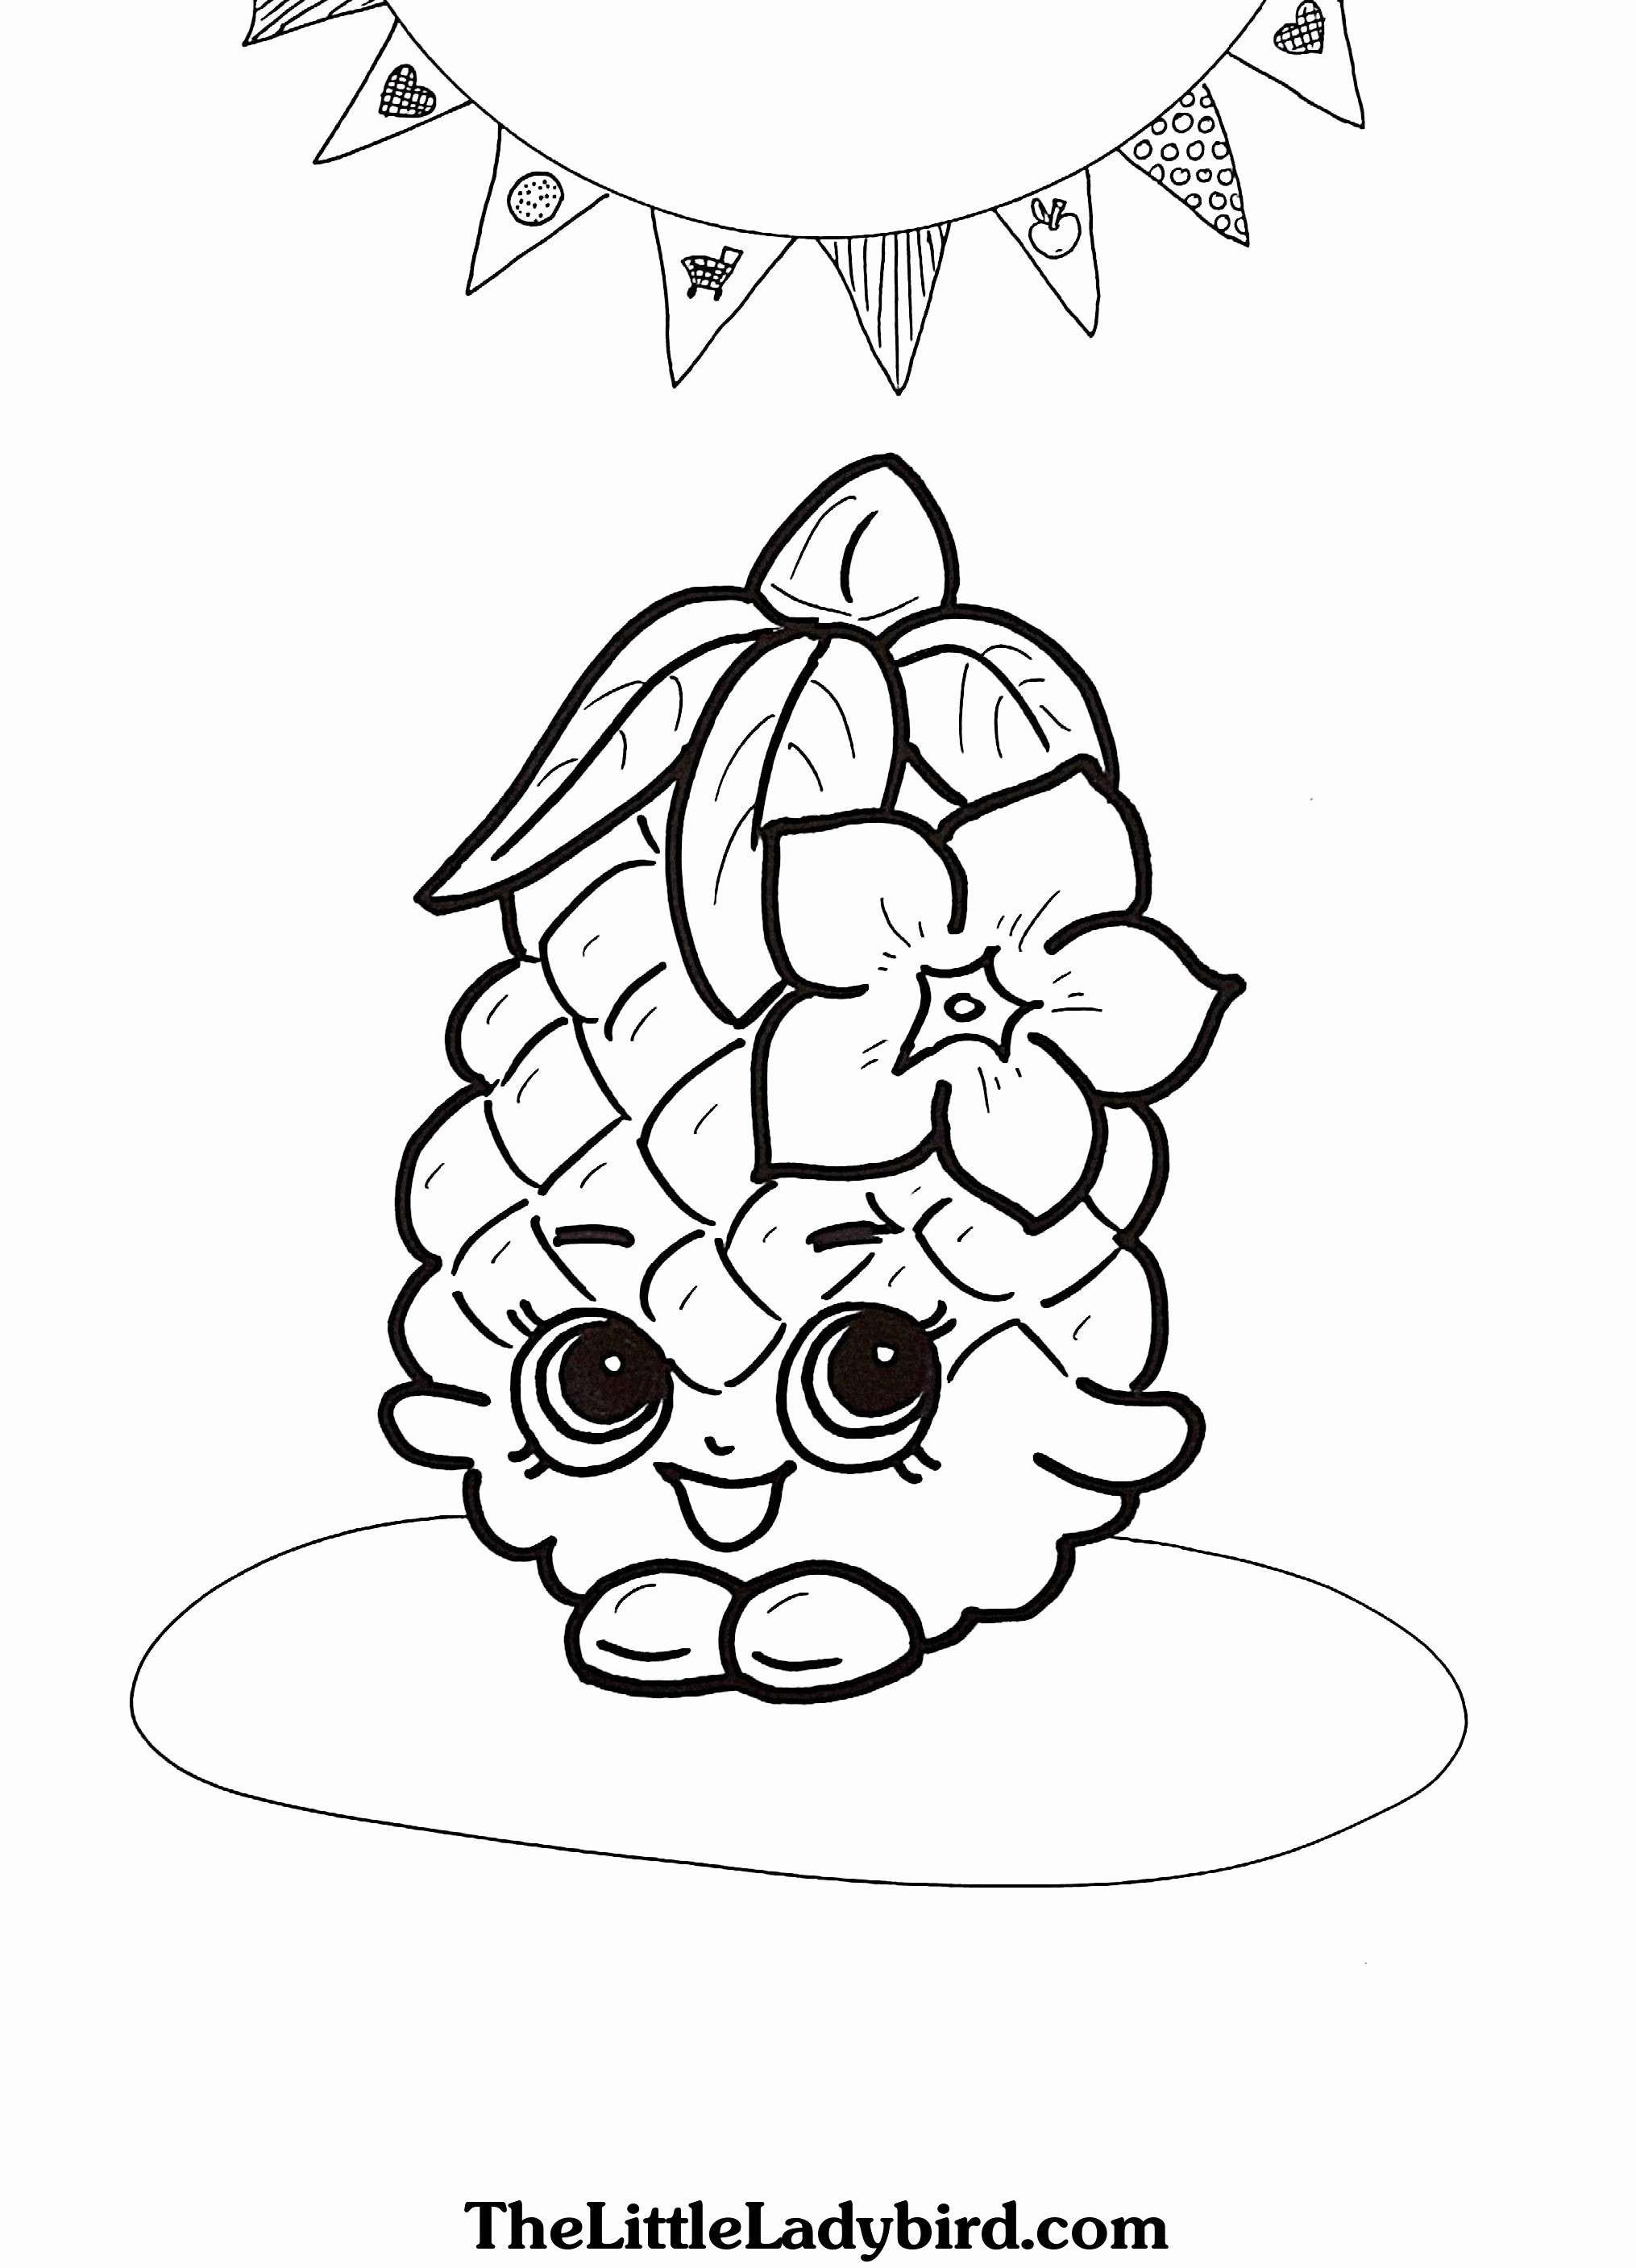 Crayola Mini Coloring Pages  Collection 9e - Save it to your computer